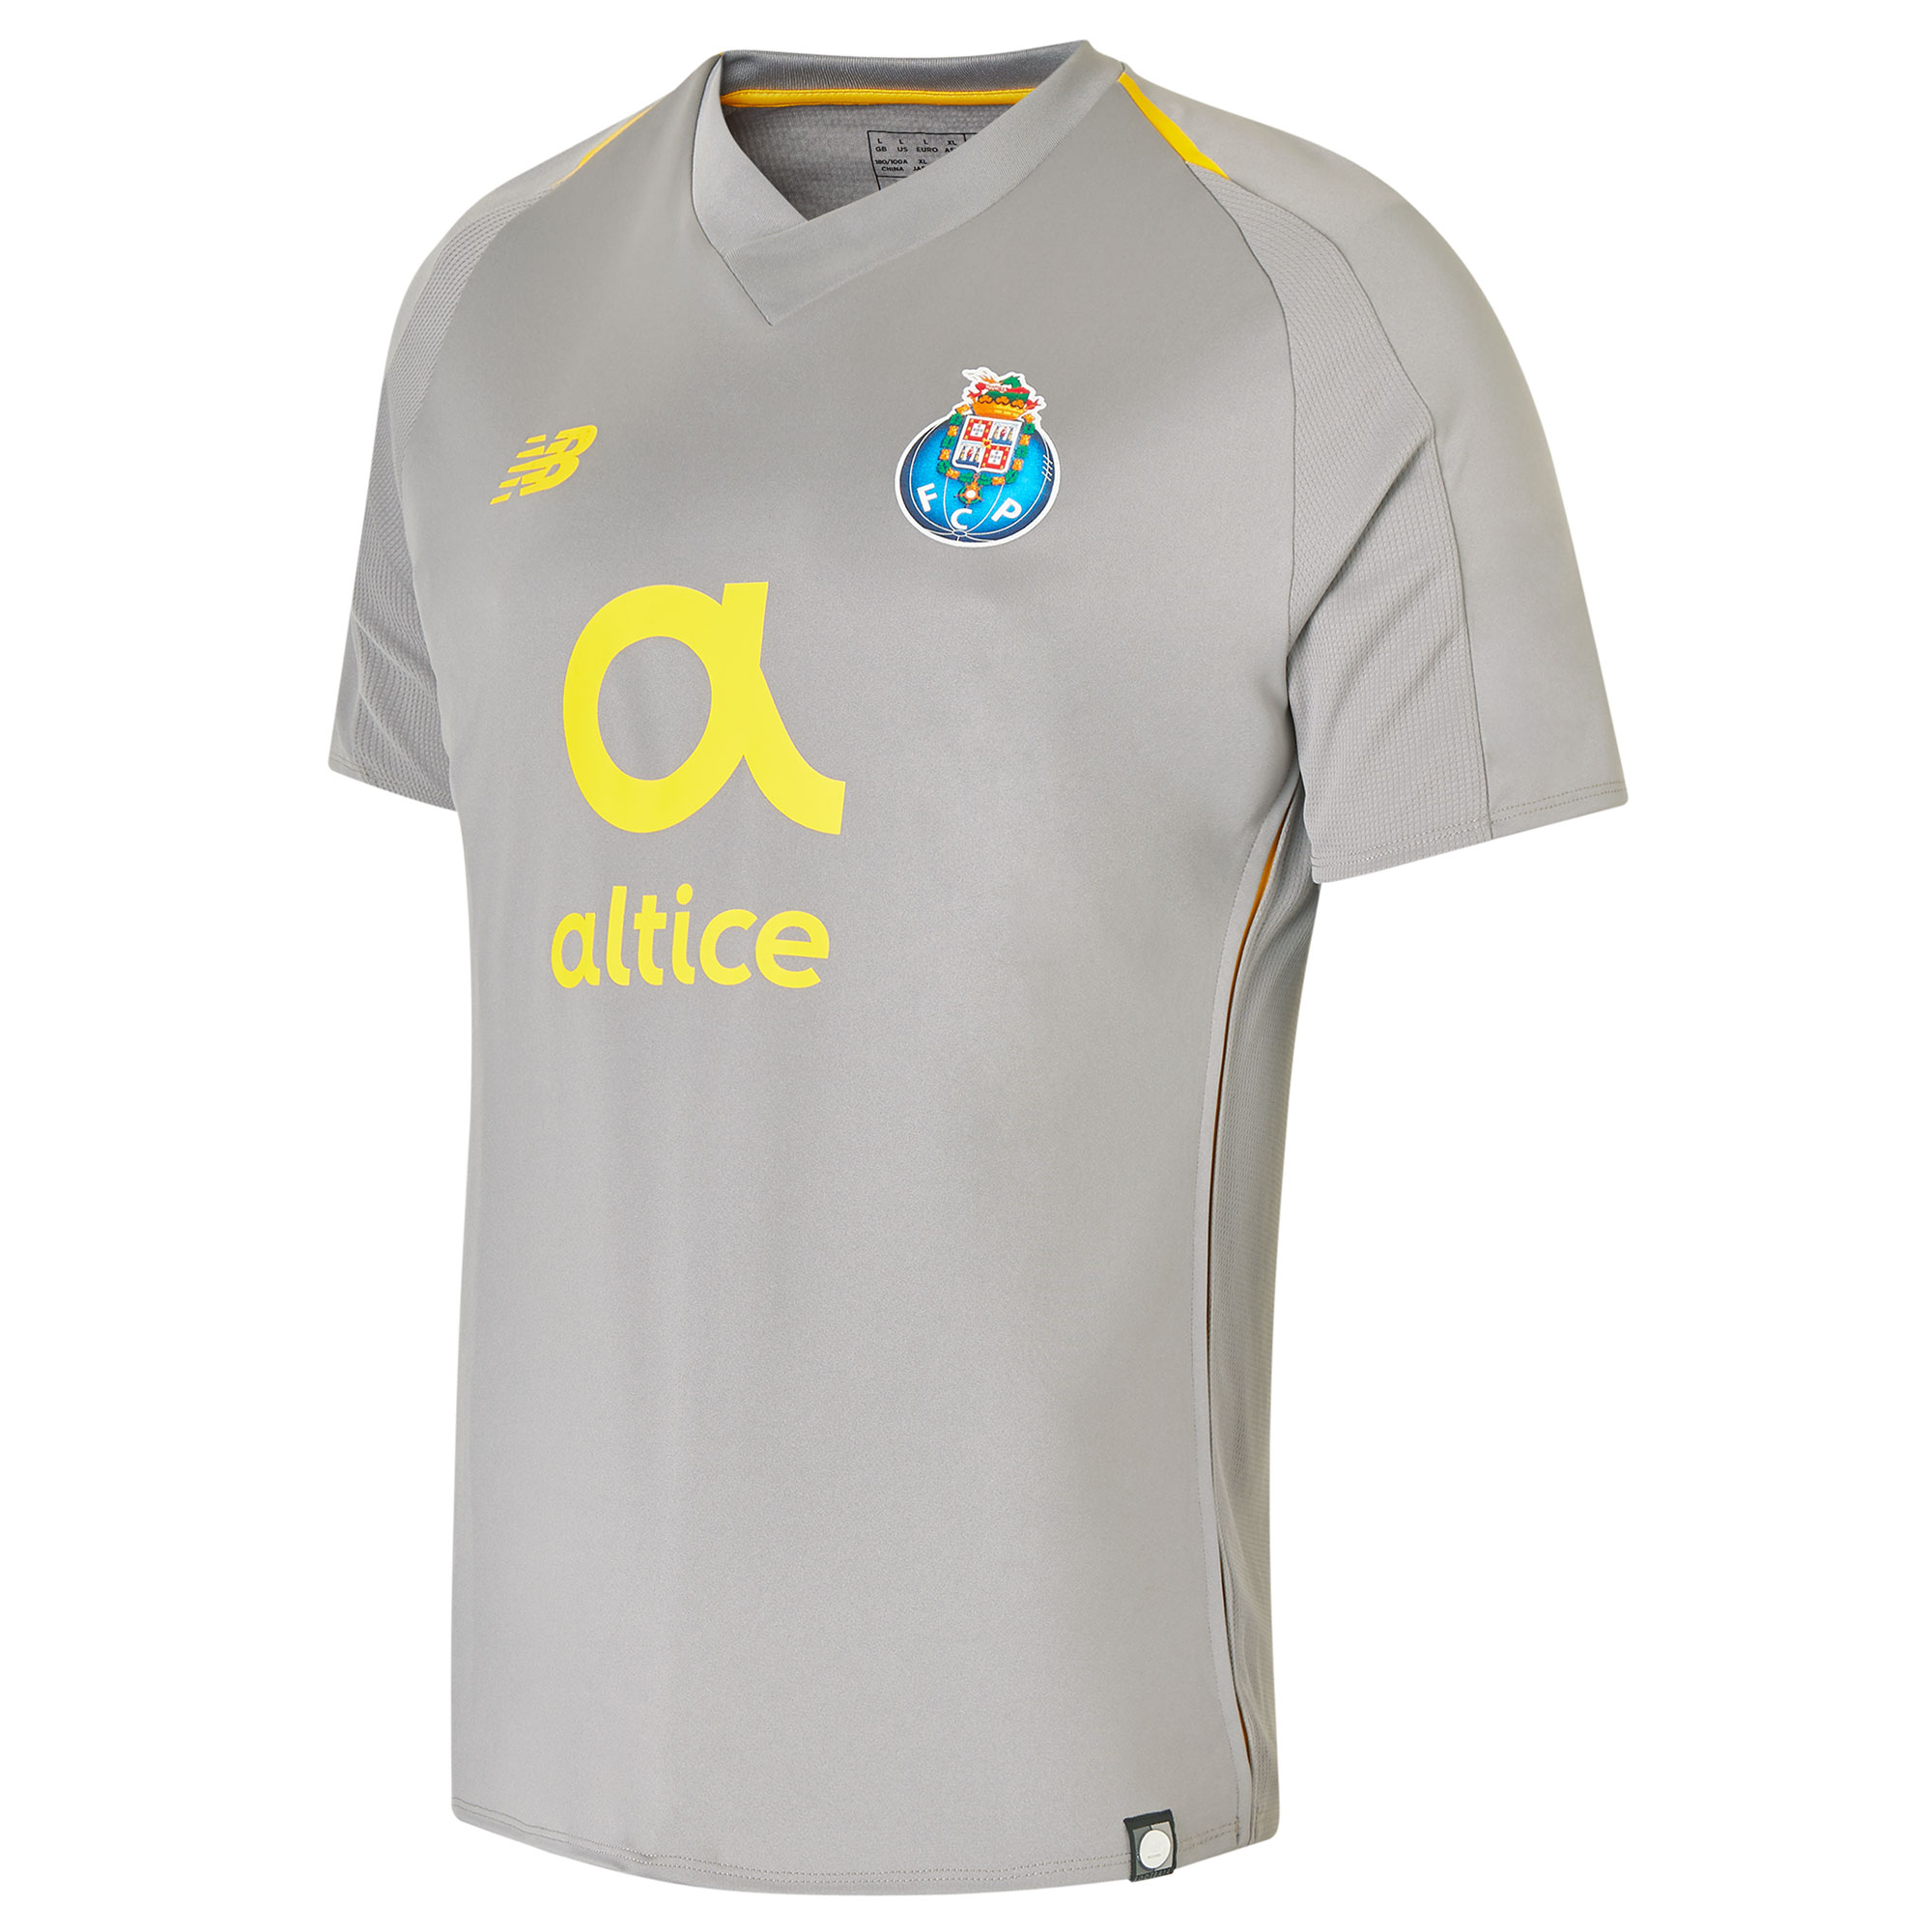 91d469488 ... FC Porto 2018-19 New Balance Home Kit · Click to enlarge image  fc porto 18 19 new balance away kit 1.jpg ...